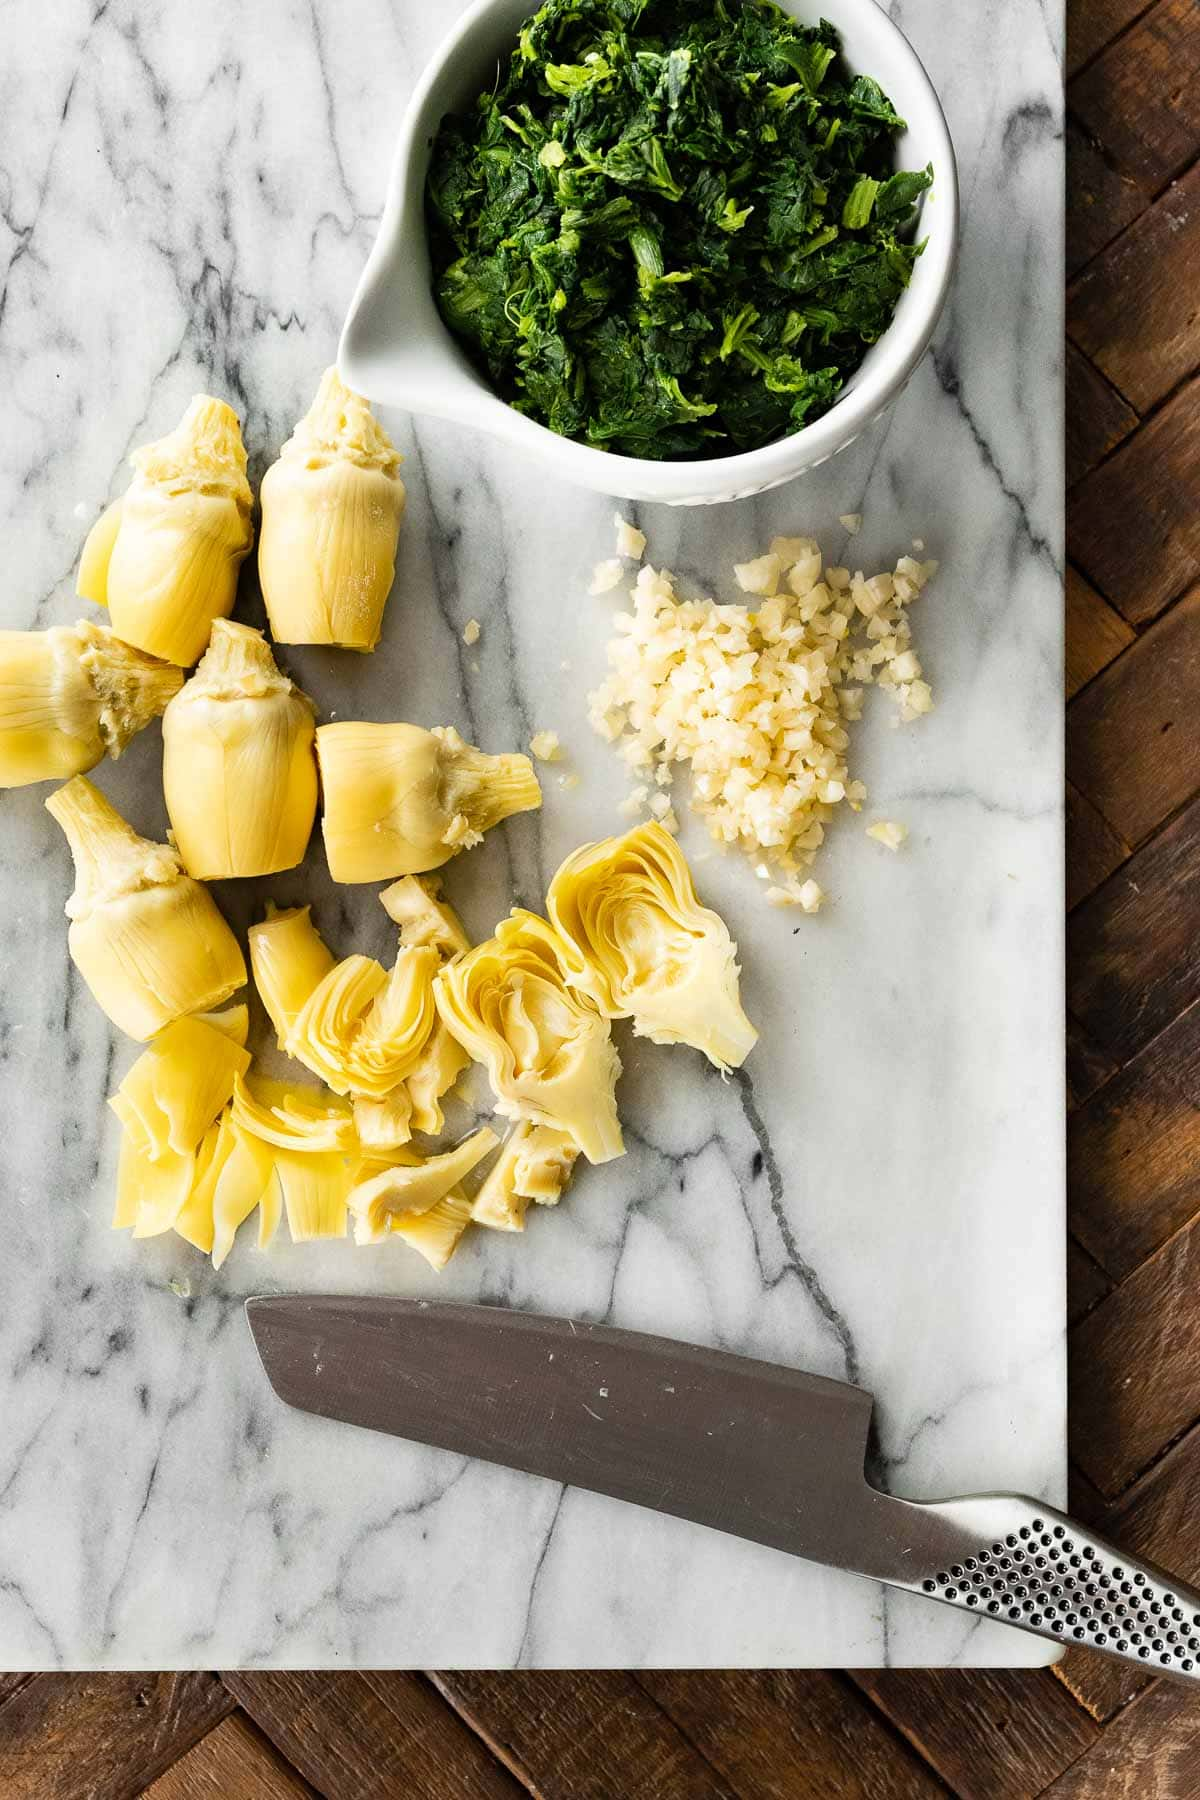 Artichokes on cutting board for Baked Spinach Artichoke Chicken